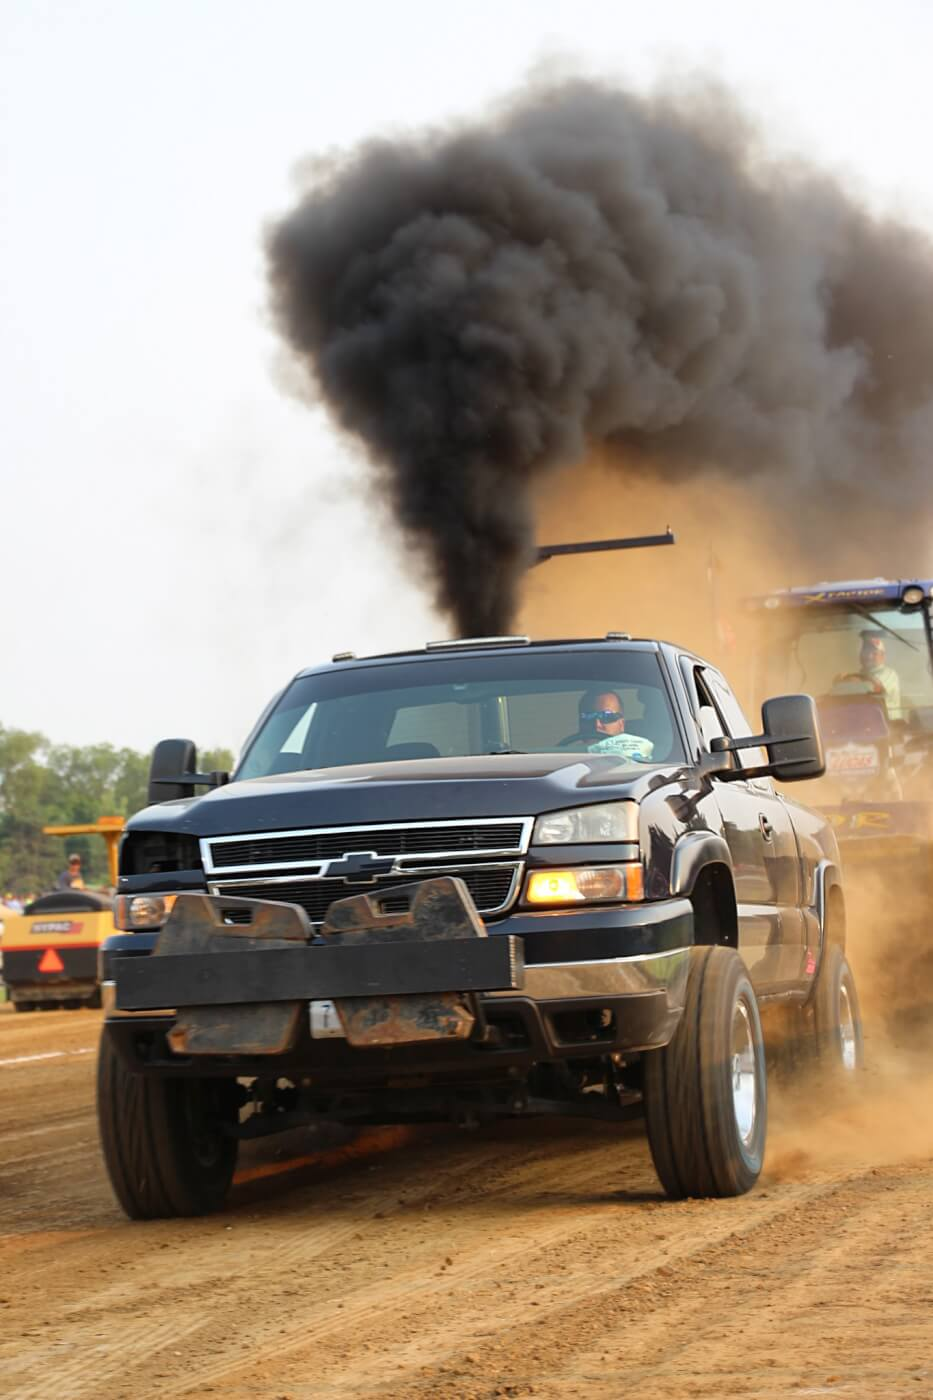 Storming his way to Fourth Place in the Open Street Diesel Truck Class was Kyle Kropp's nasty Duramax. His Silverado would carry him just over 319 feet. In the Work Stock Class, he would end up third, hauling the iron Bungart sled a total of 341 feet.